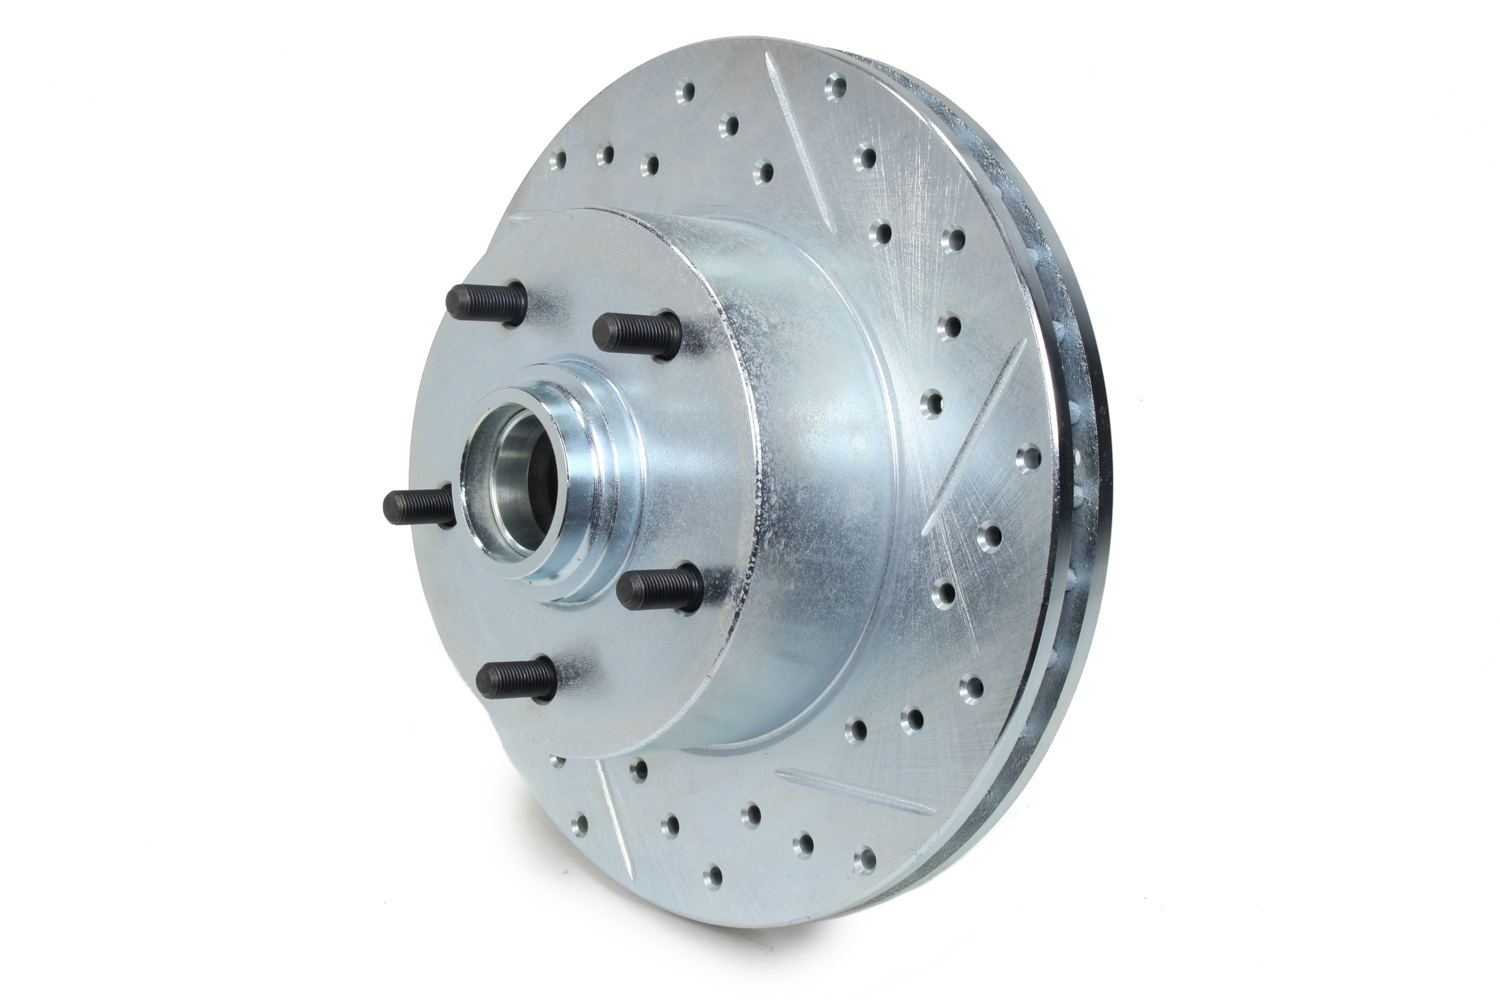 Stoptech 227.62000L Brake Rotor, Sport, Front, Driver Side, Drilled / Slotted, 279.3 mm OD, 26.3 mm Thick, 5 x 120.6 mm Bolt Pattern, Iron, Natural, Each